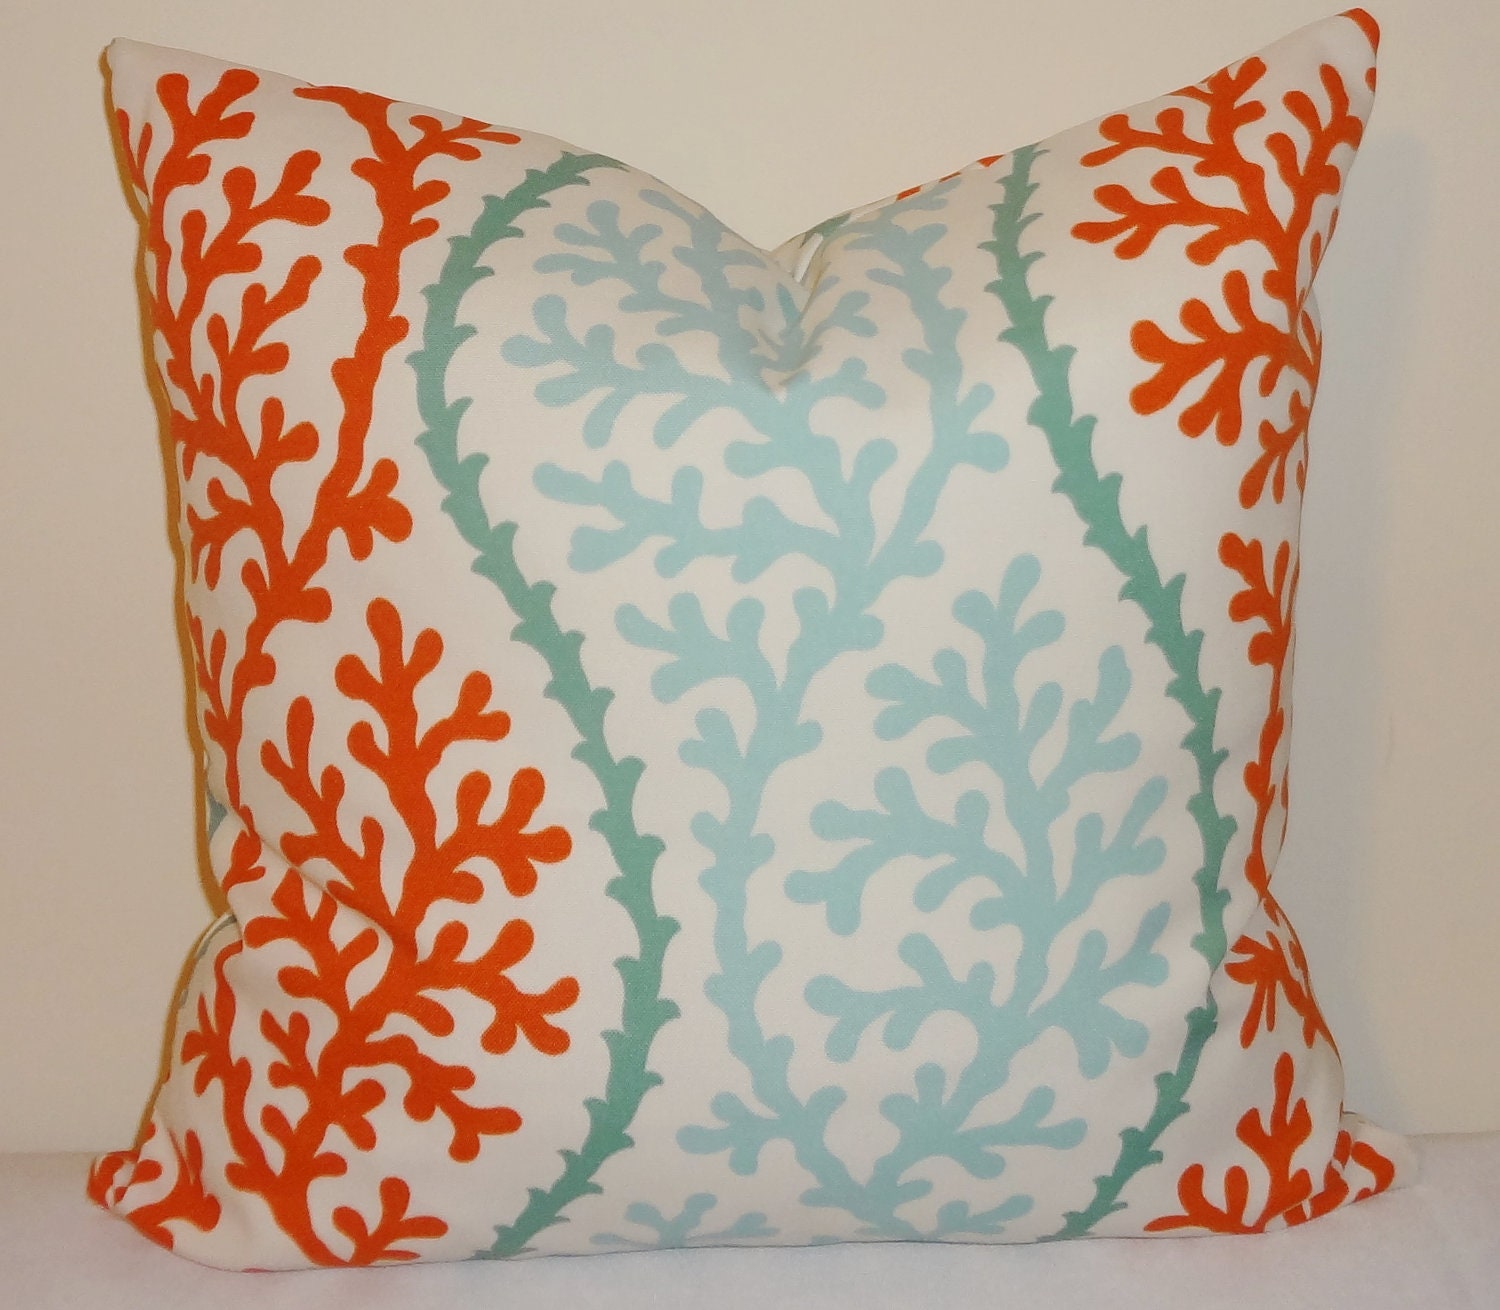 Decorative Pillows Blue And Orange : OUTDOOR Turquoise Coral Blue Orange Pillow Cushion Covers